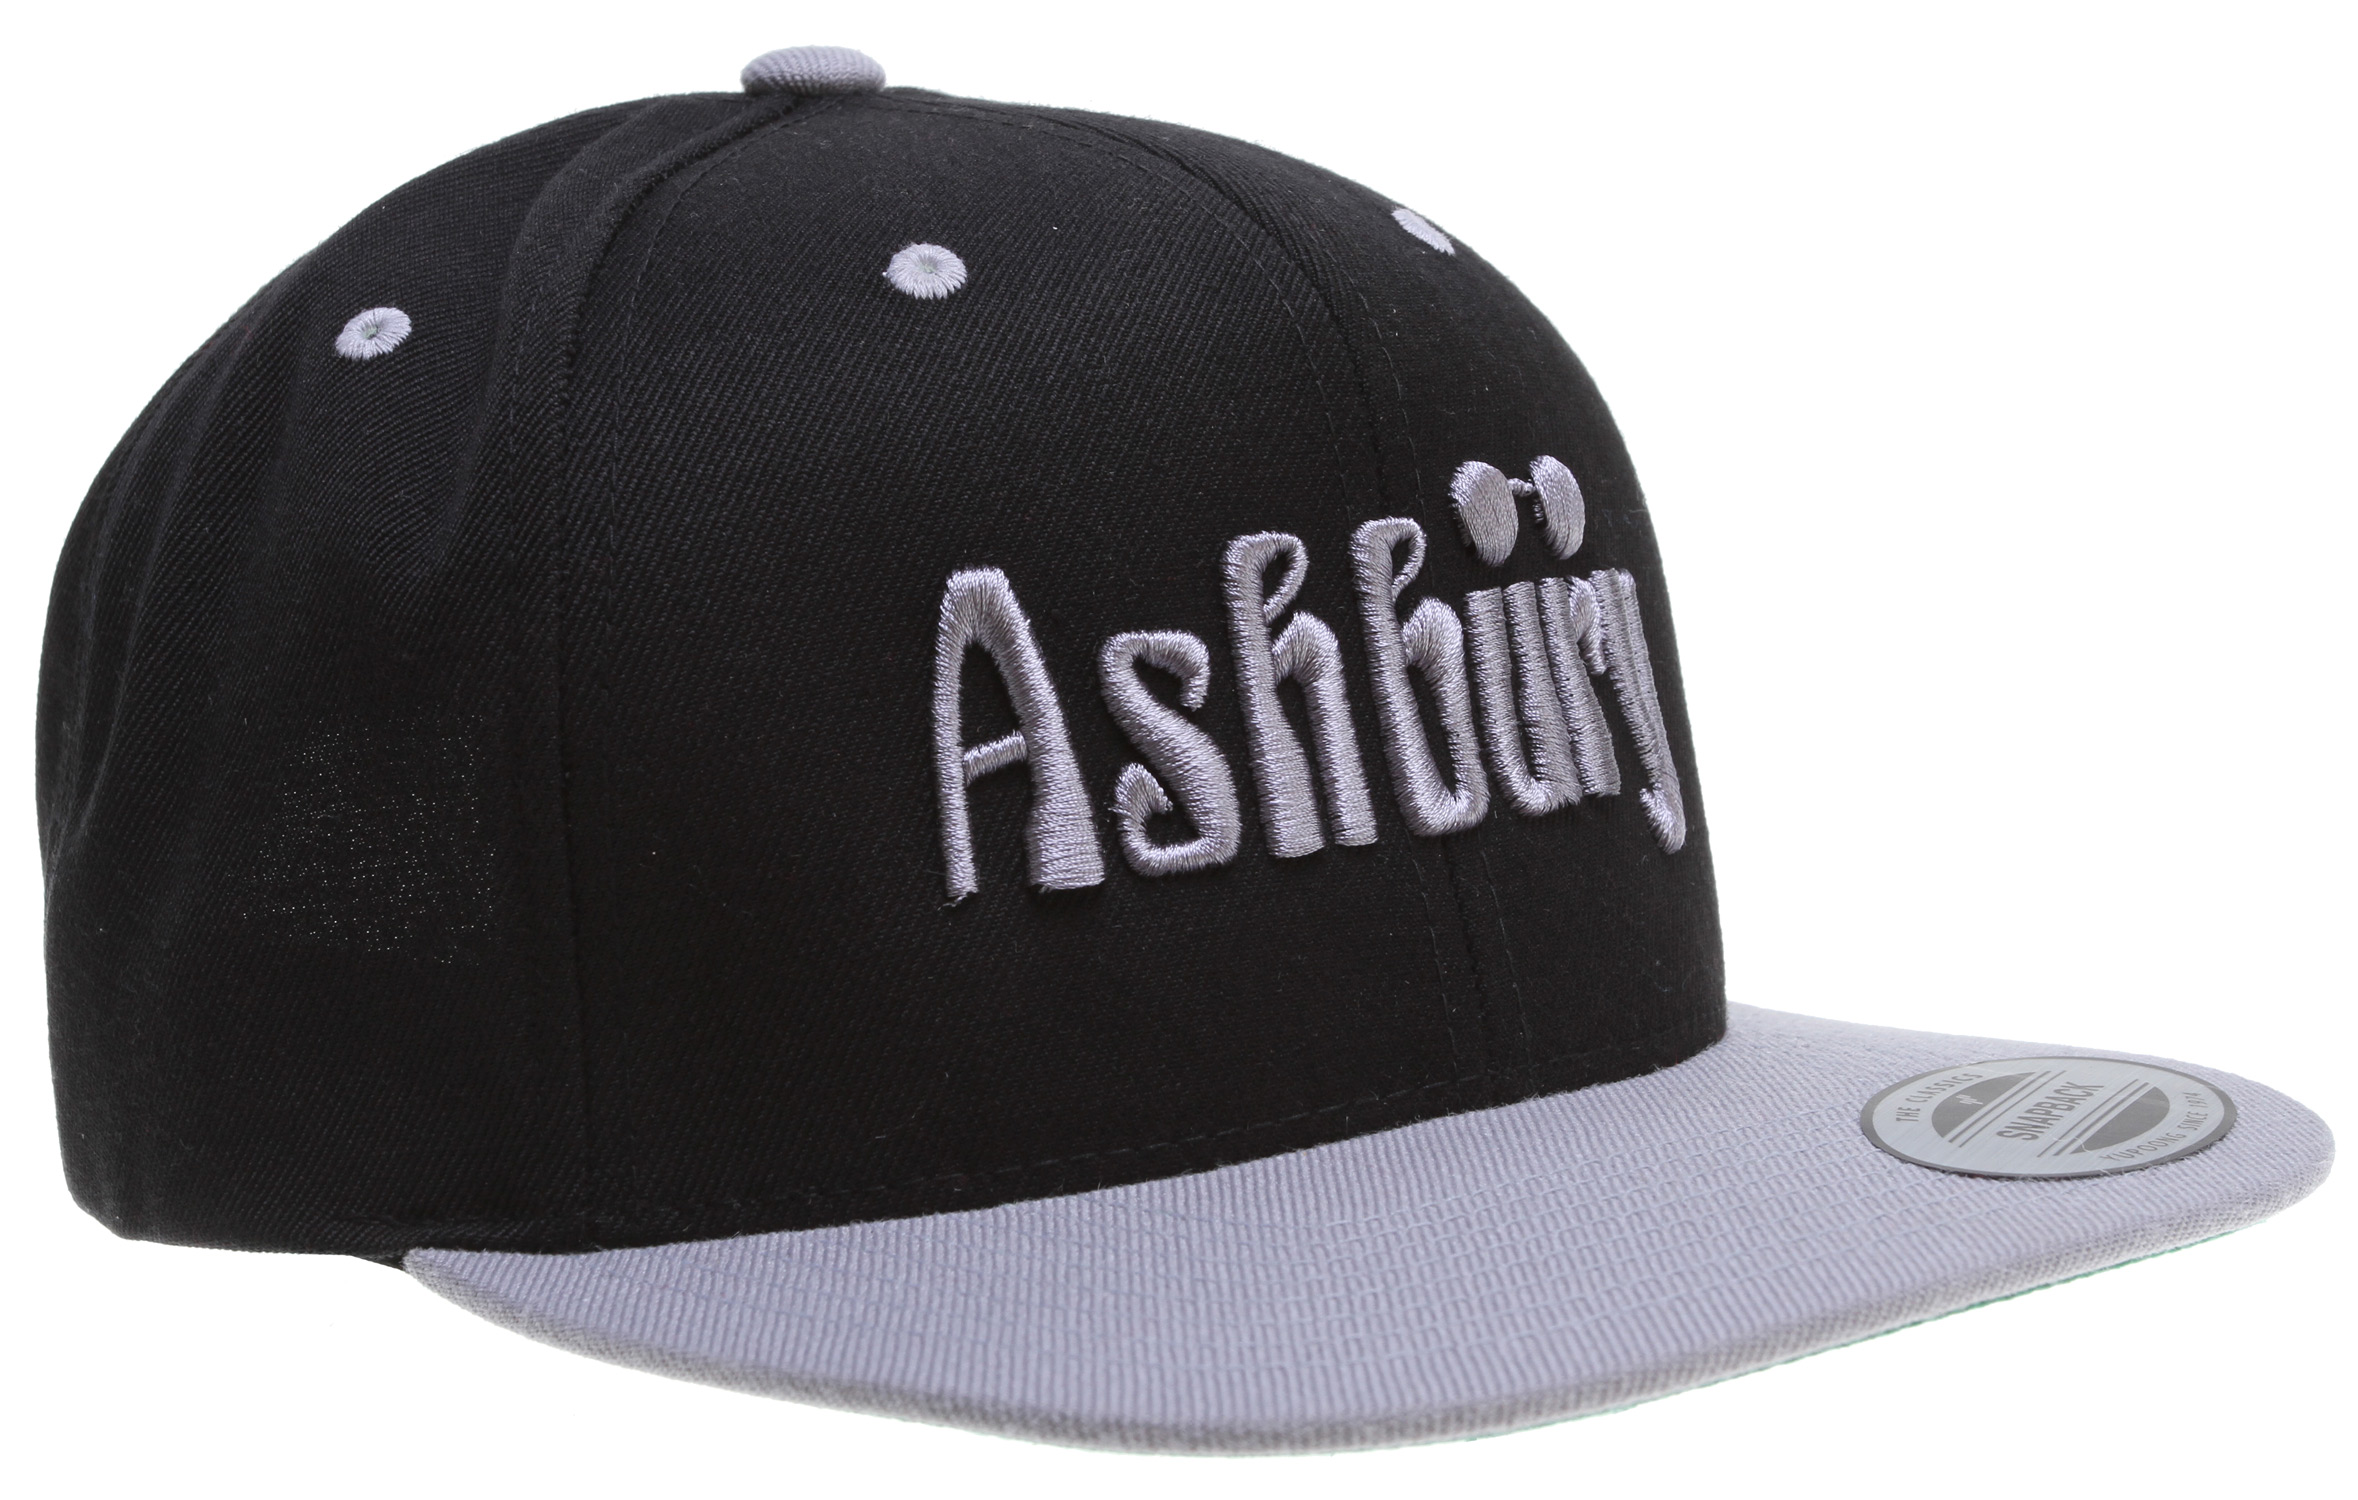 Key Features of the Ashbury Og Cap: 6 Panel Adjustable Snapback 100% Wool / Embroidered Logo - $17.95